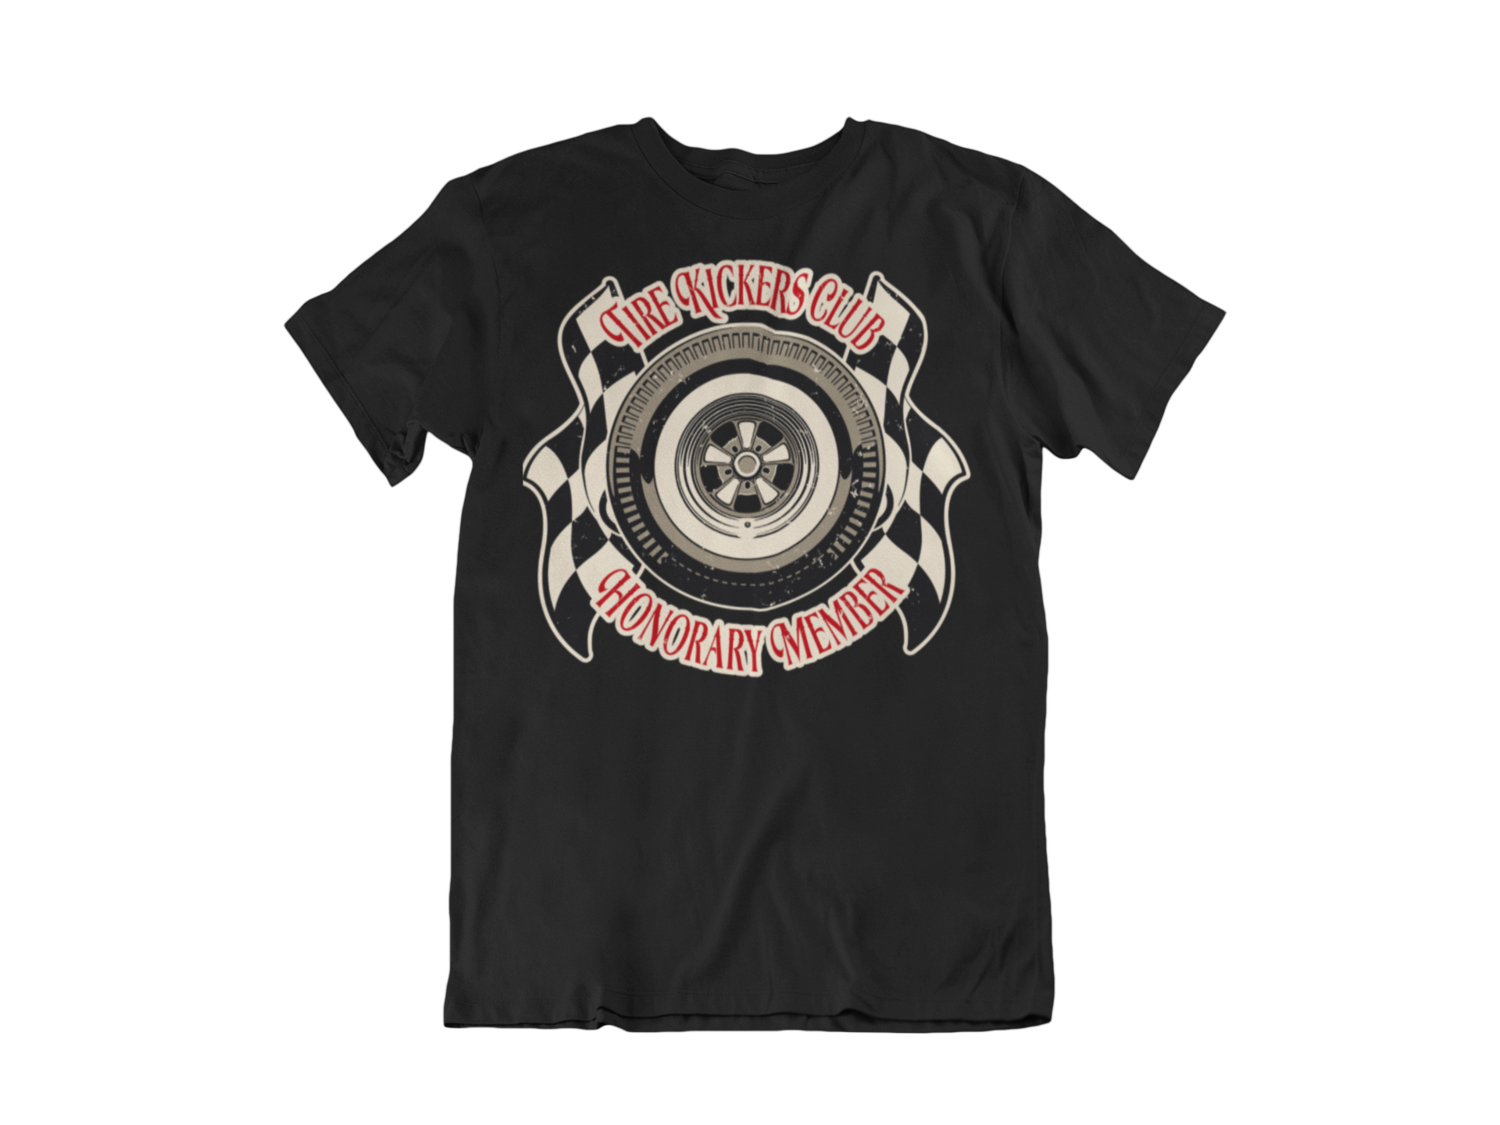 """TIRE KICKERS CLUB T-SHIRT MAN BY Ger """"Dutch Courage"""" Peters artwork"""